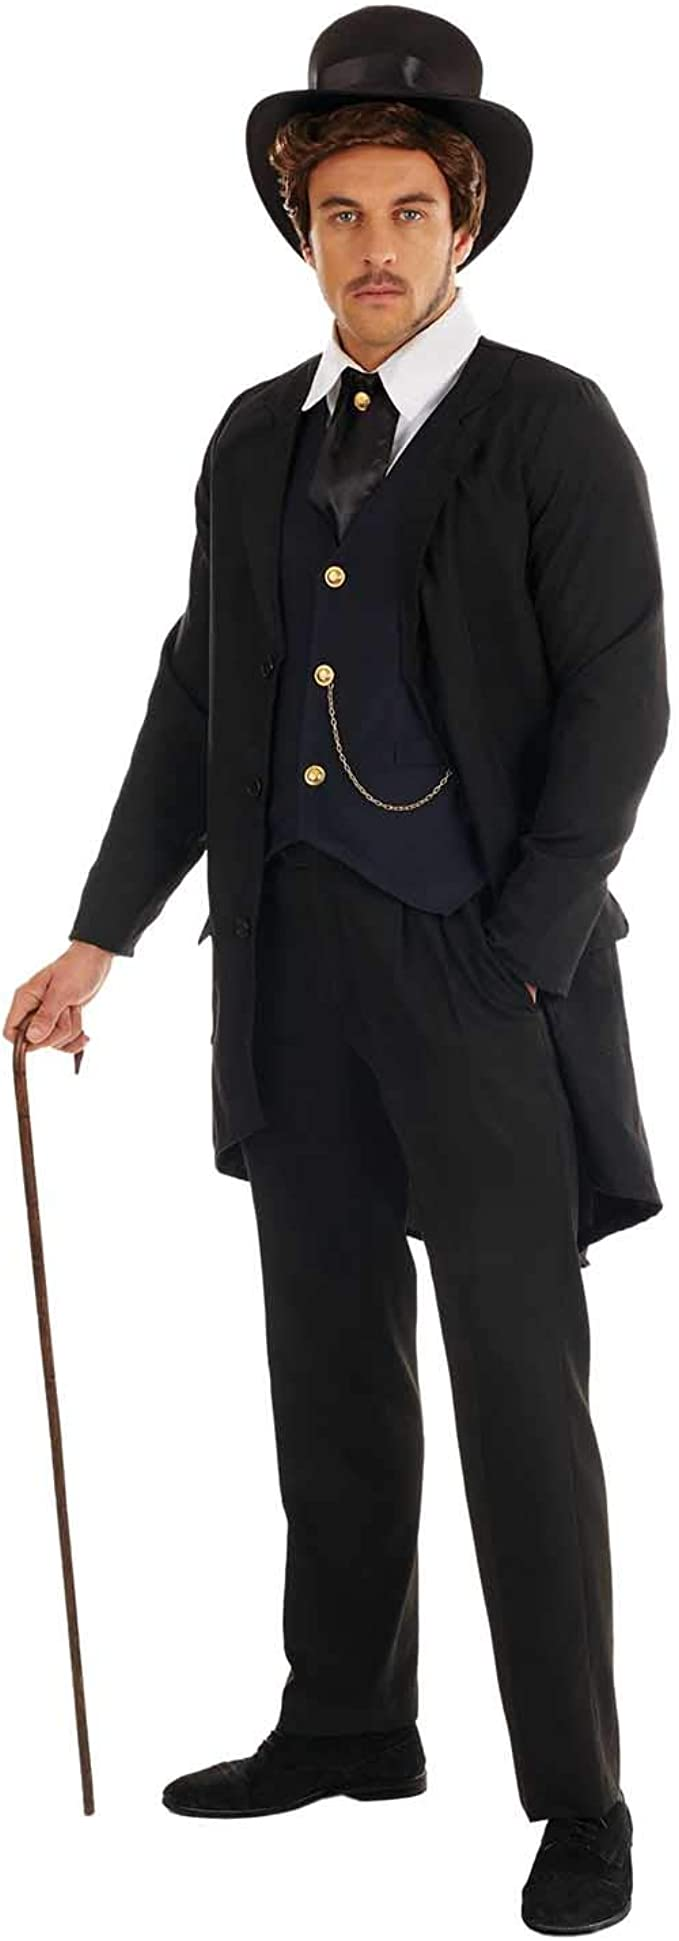 Victorian Men's Clothing, Fashion – 1840 to 1890s Adult Victorian Man Fancy Dress Costume £24.49 AT vintagedancer.com